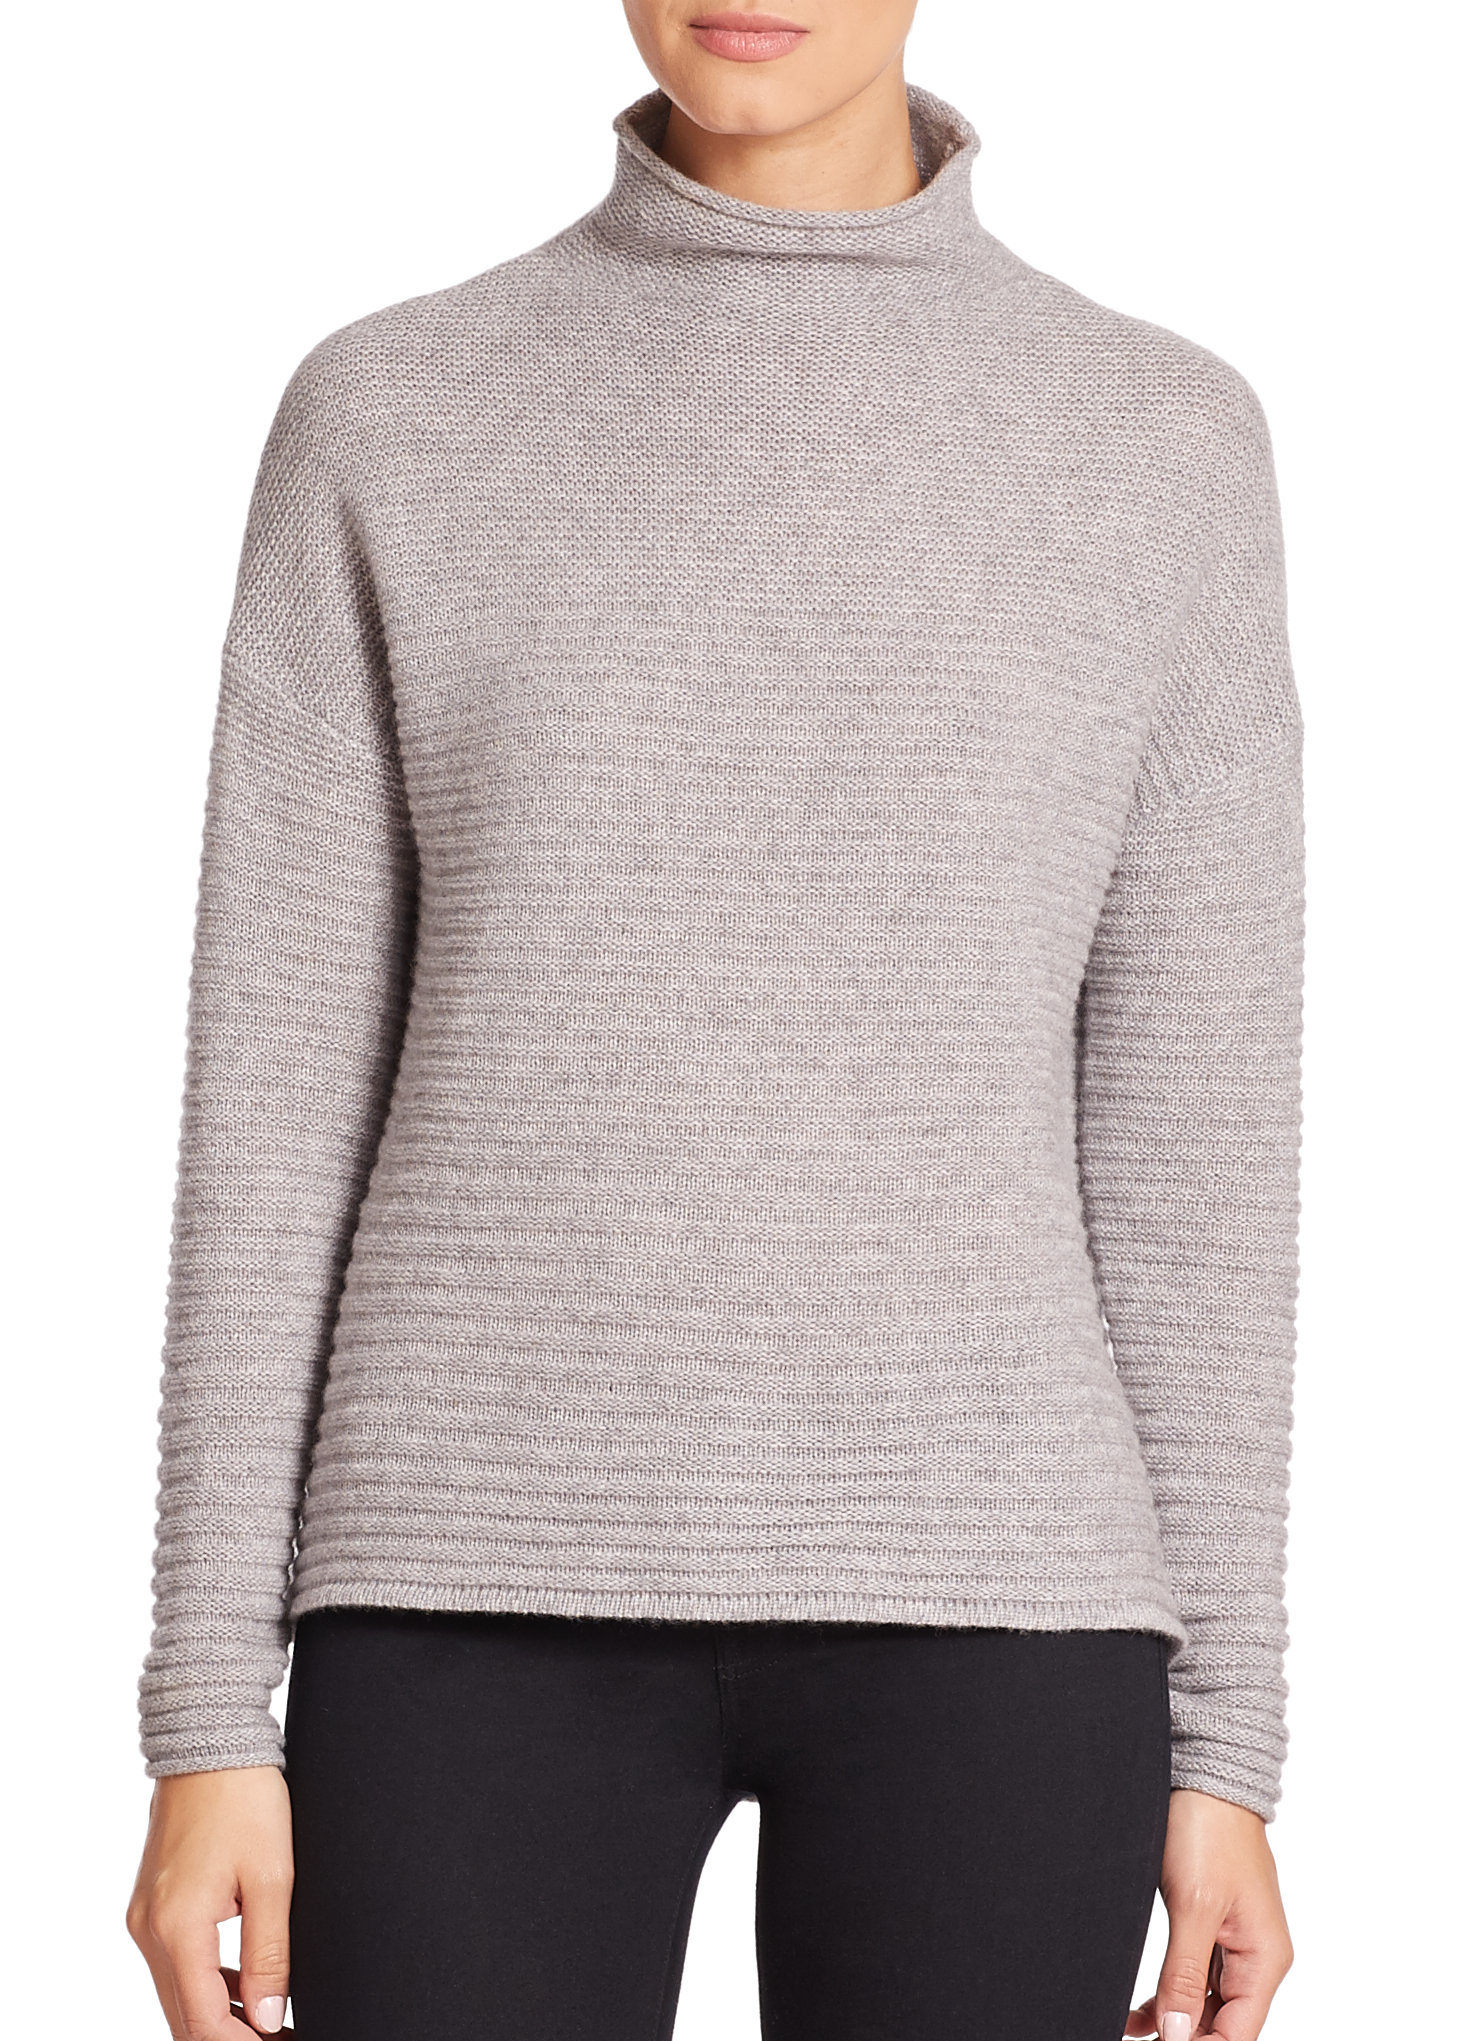 360cashmere Audra Mock-neck Cashmere Sweater in Gray | Lyst